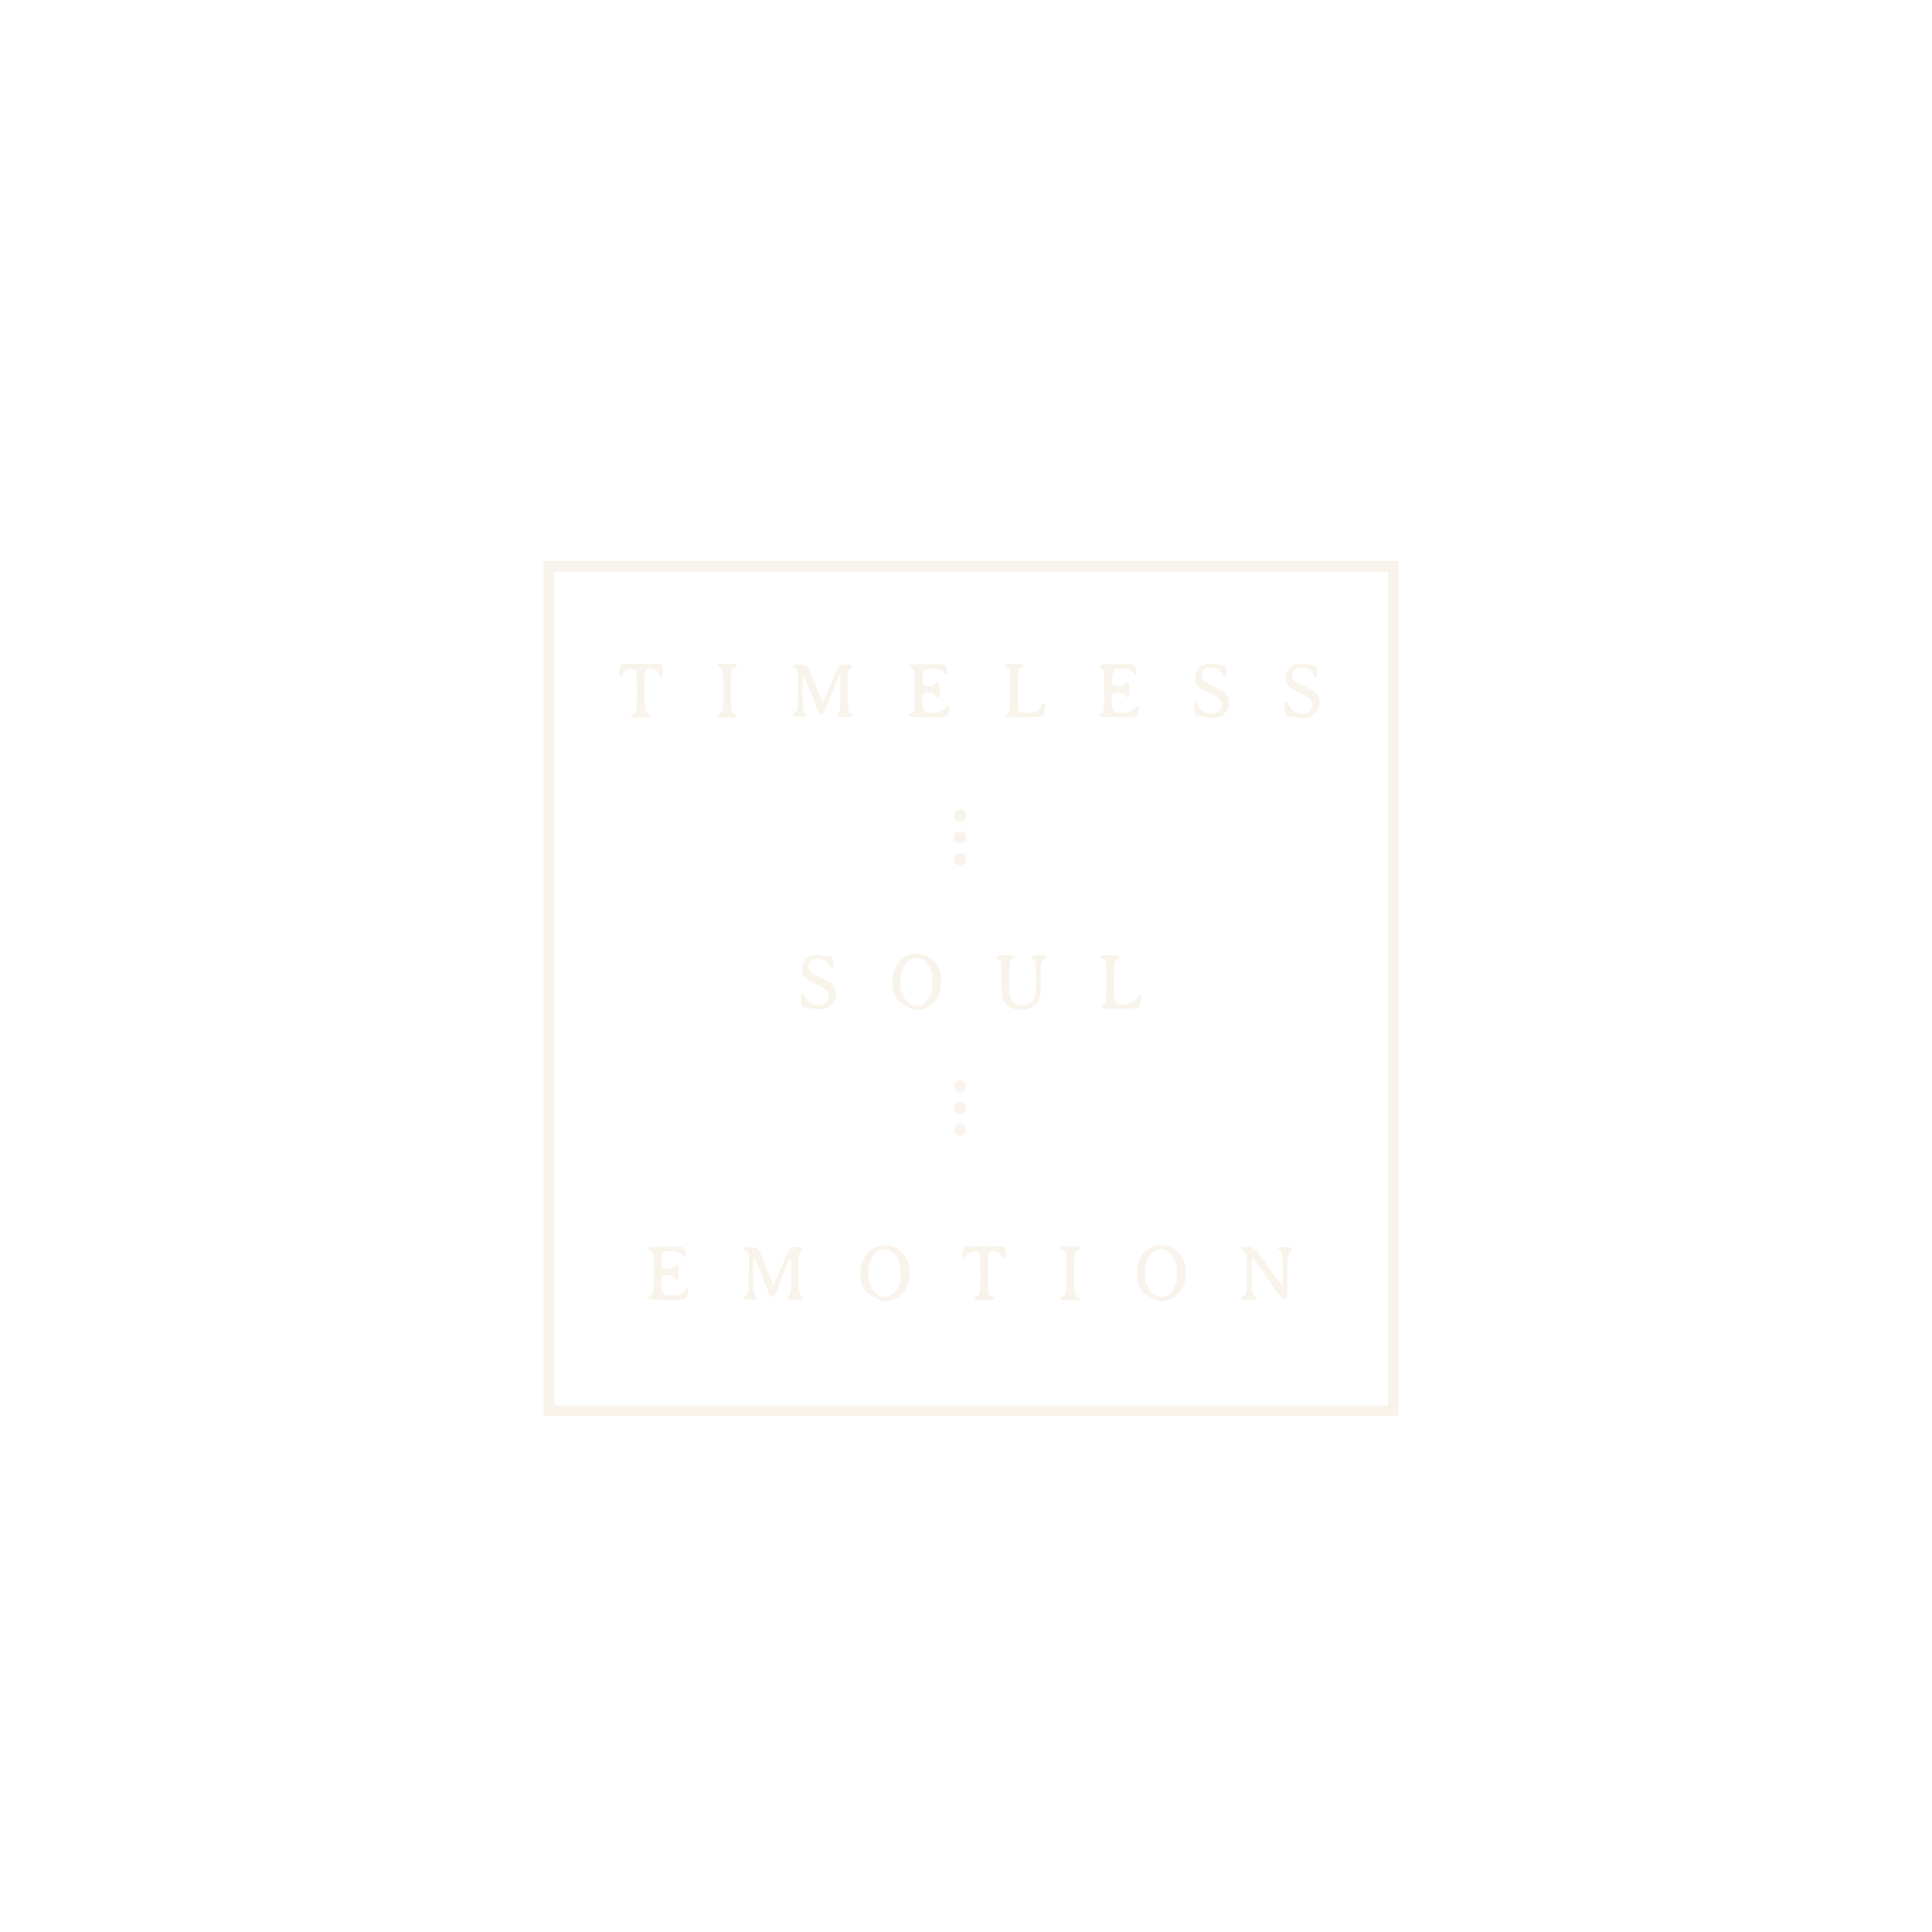 Timeless | Soul | Emotion